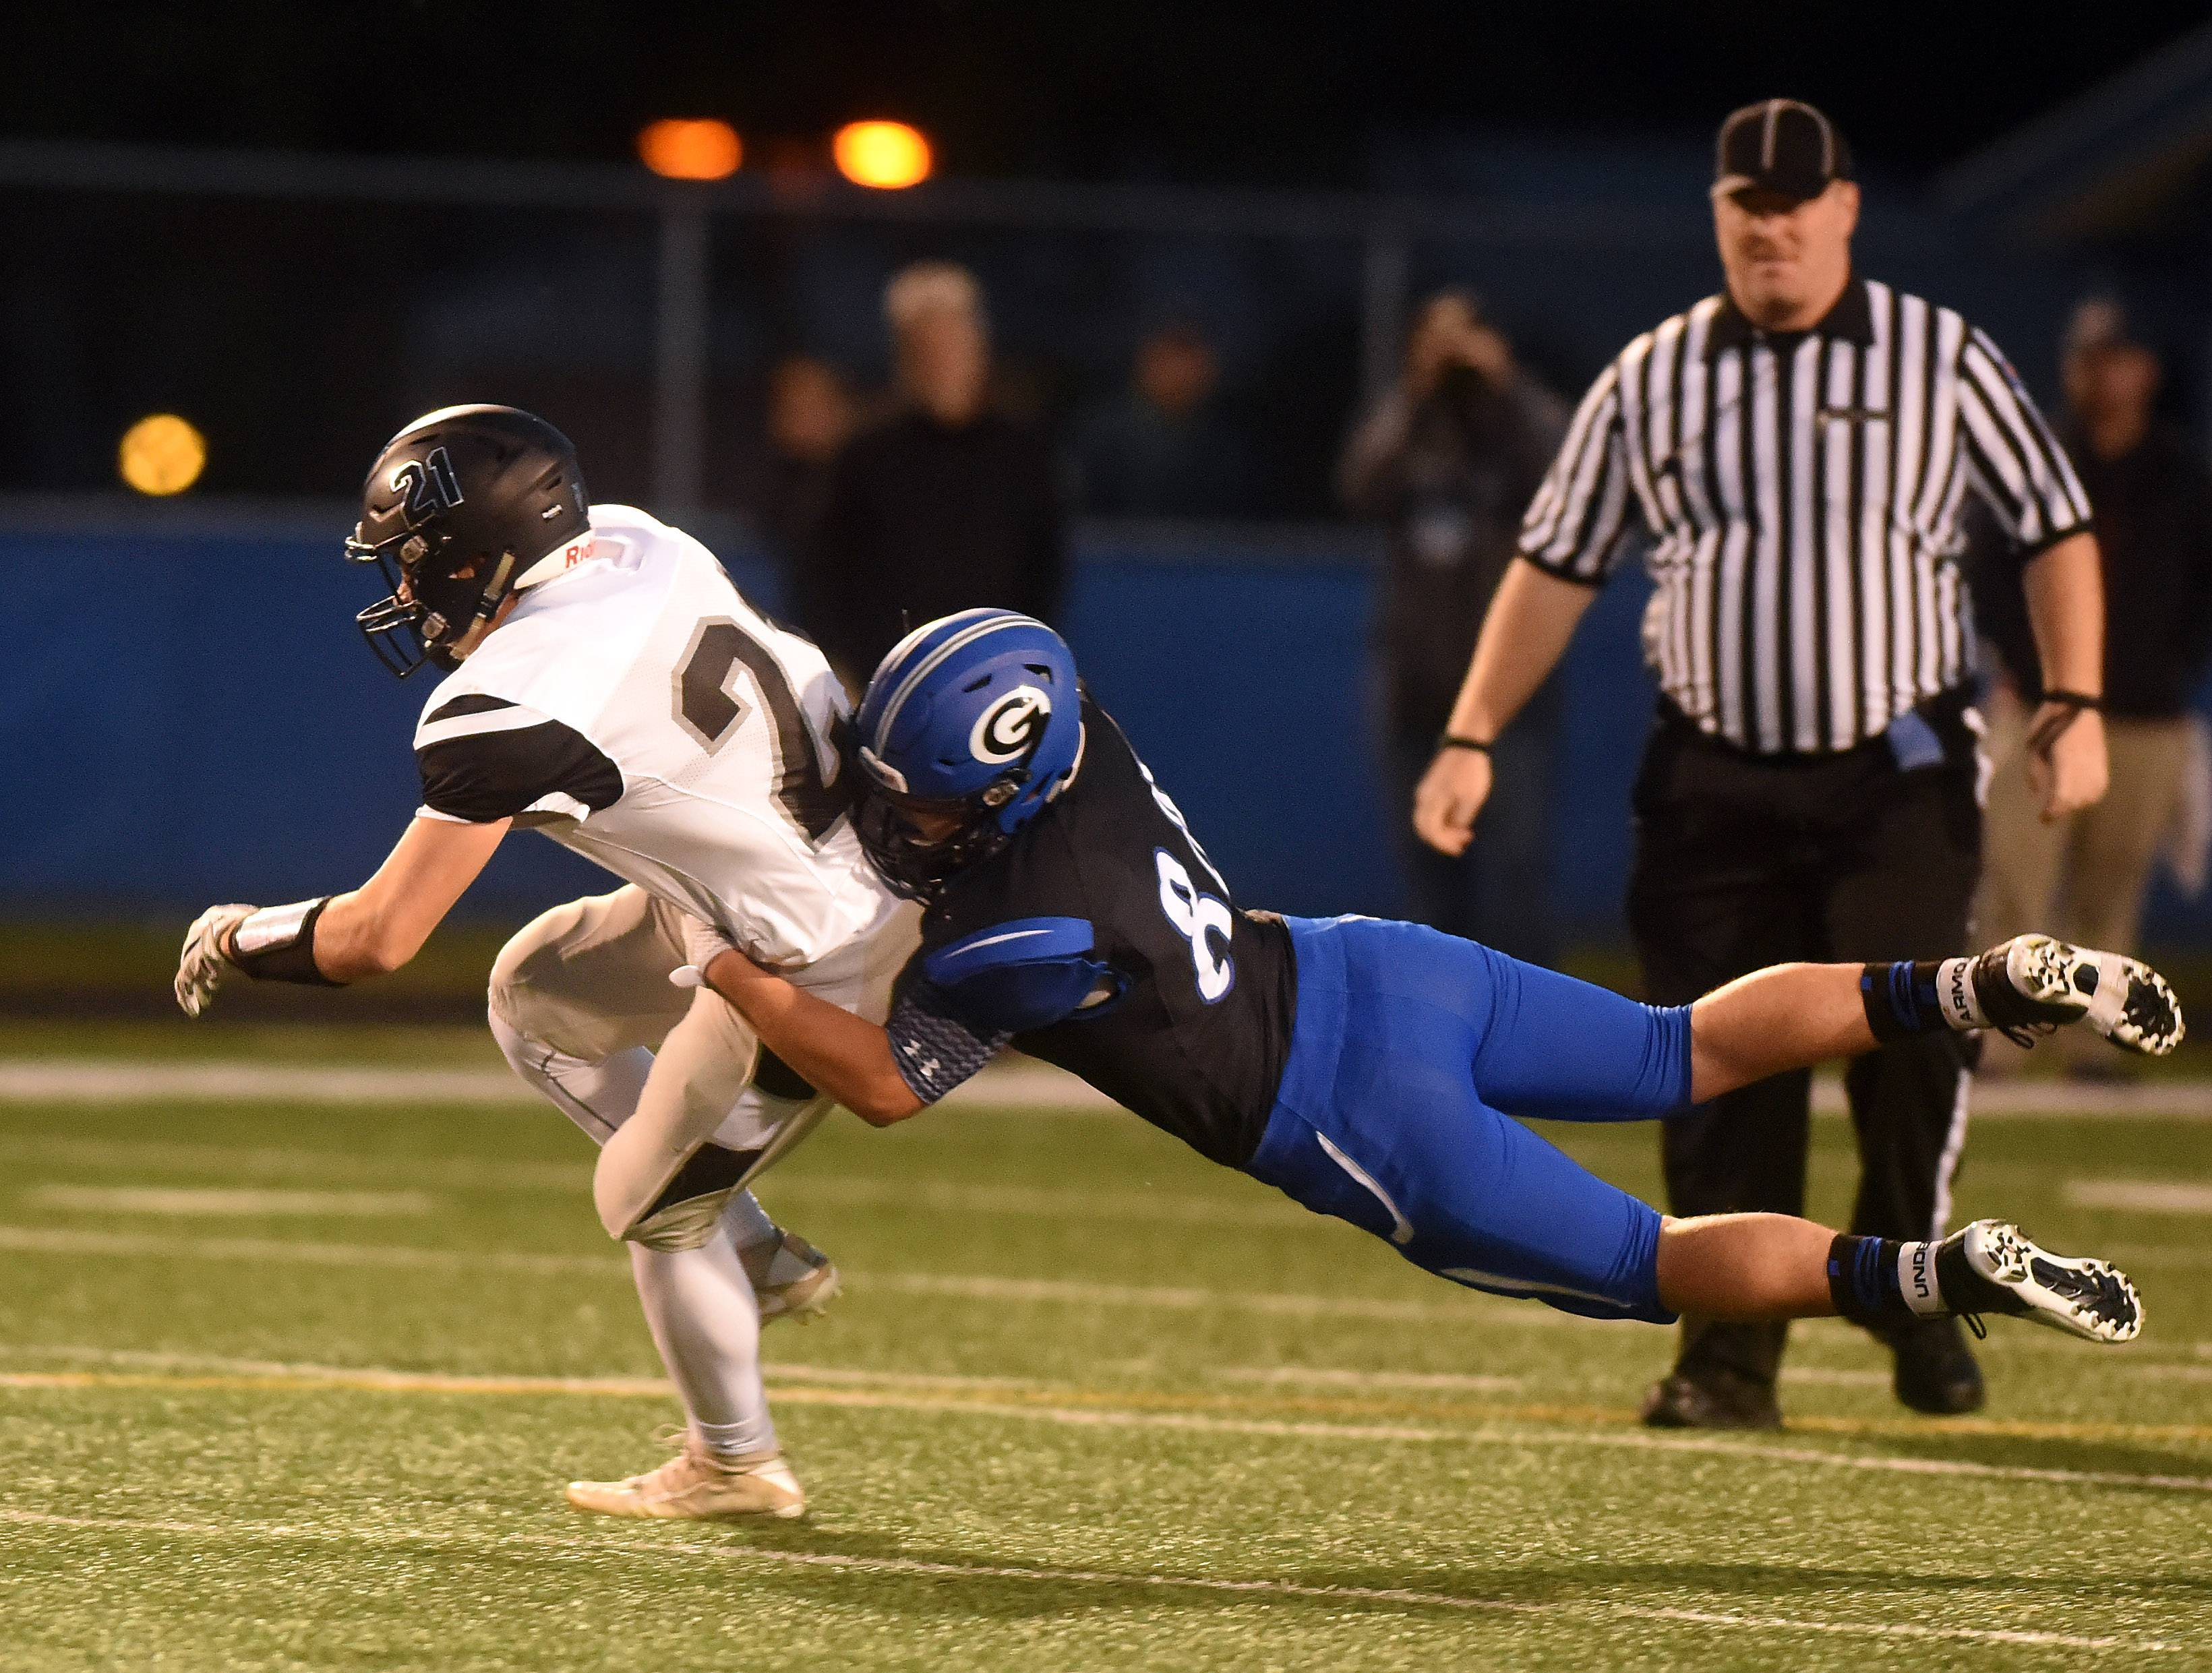 Kaneland's Alex Moses (21) is brought down by Geneva's Cory Marcinkus (84) during Friday's game in Geneva.